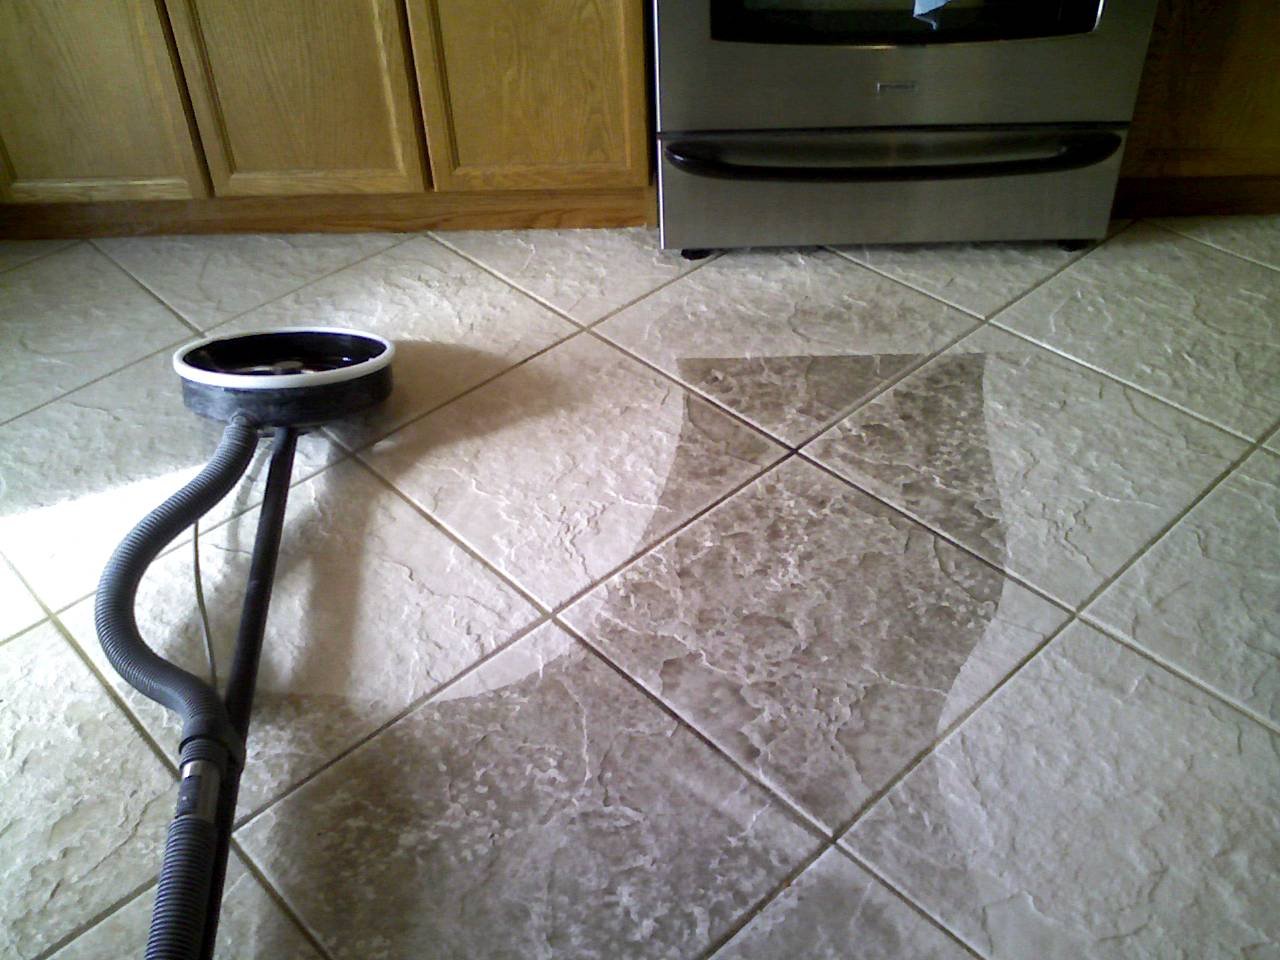 Dirty Kitchen Tile And Grout Hire A Professional Tile And Grout Cleaning Company